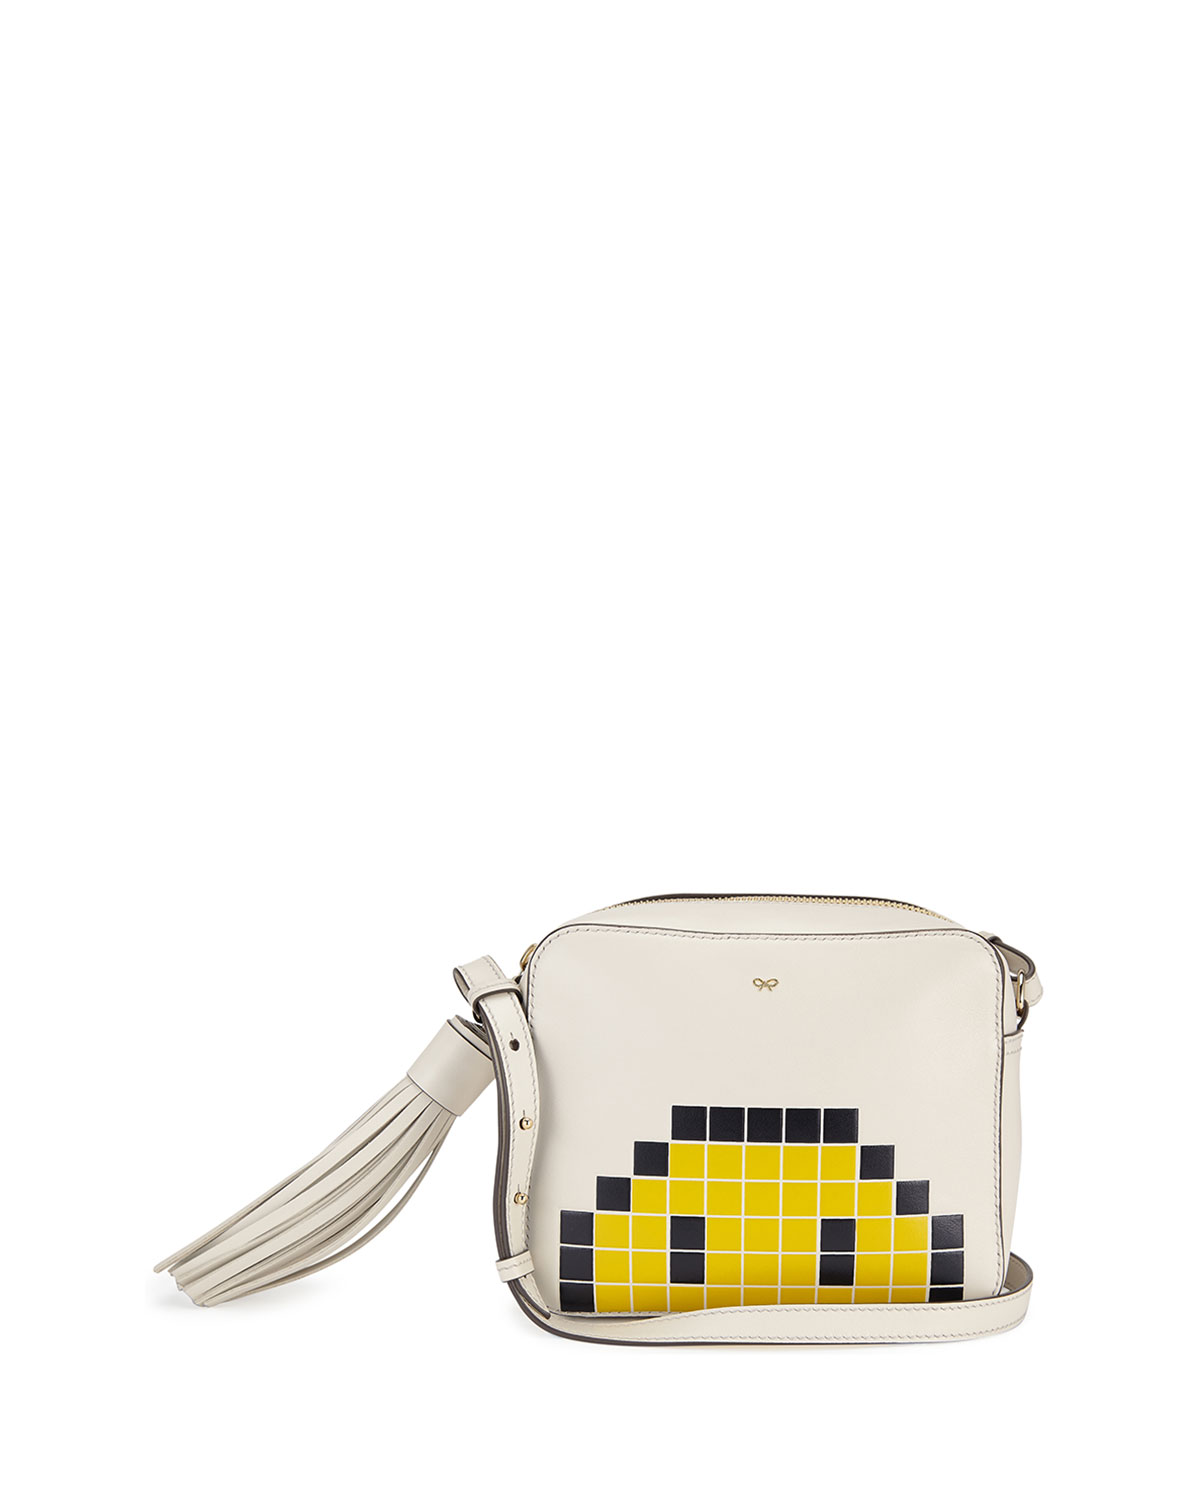 Pixel Smiley Leather Crossbody Bag, White